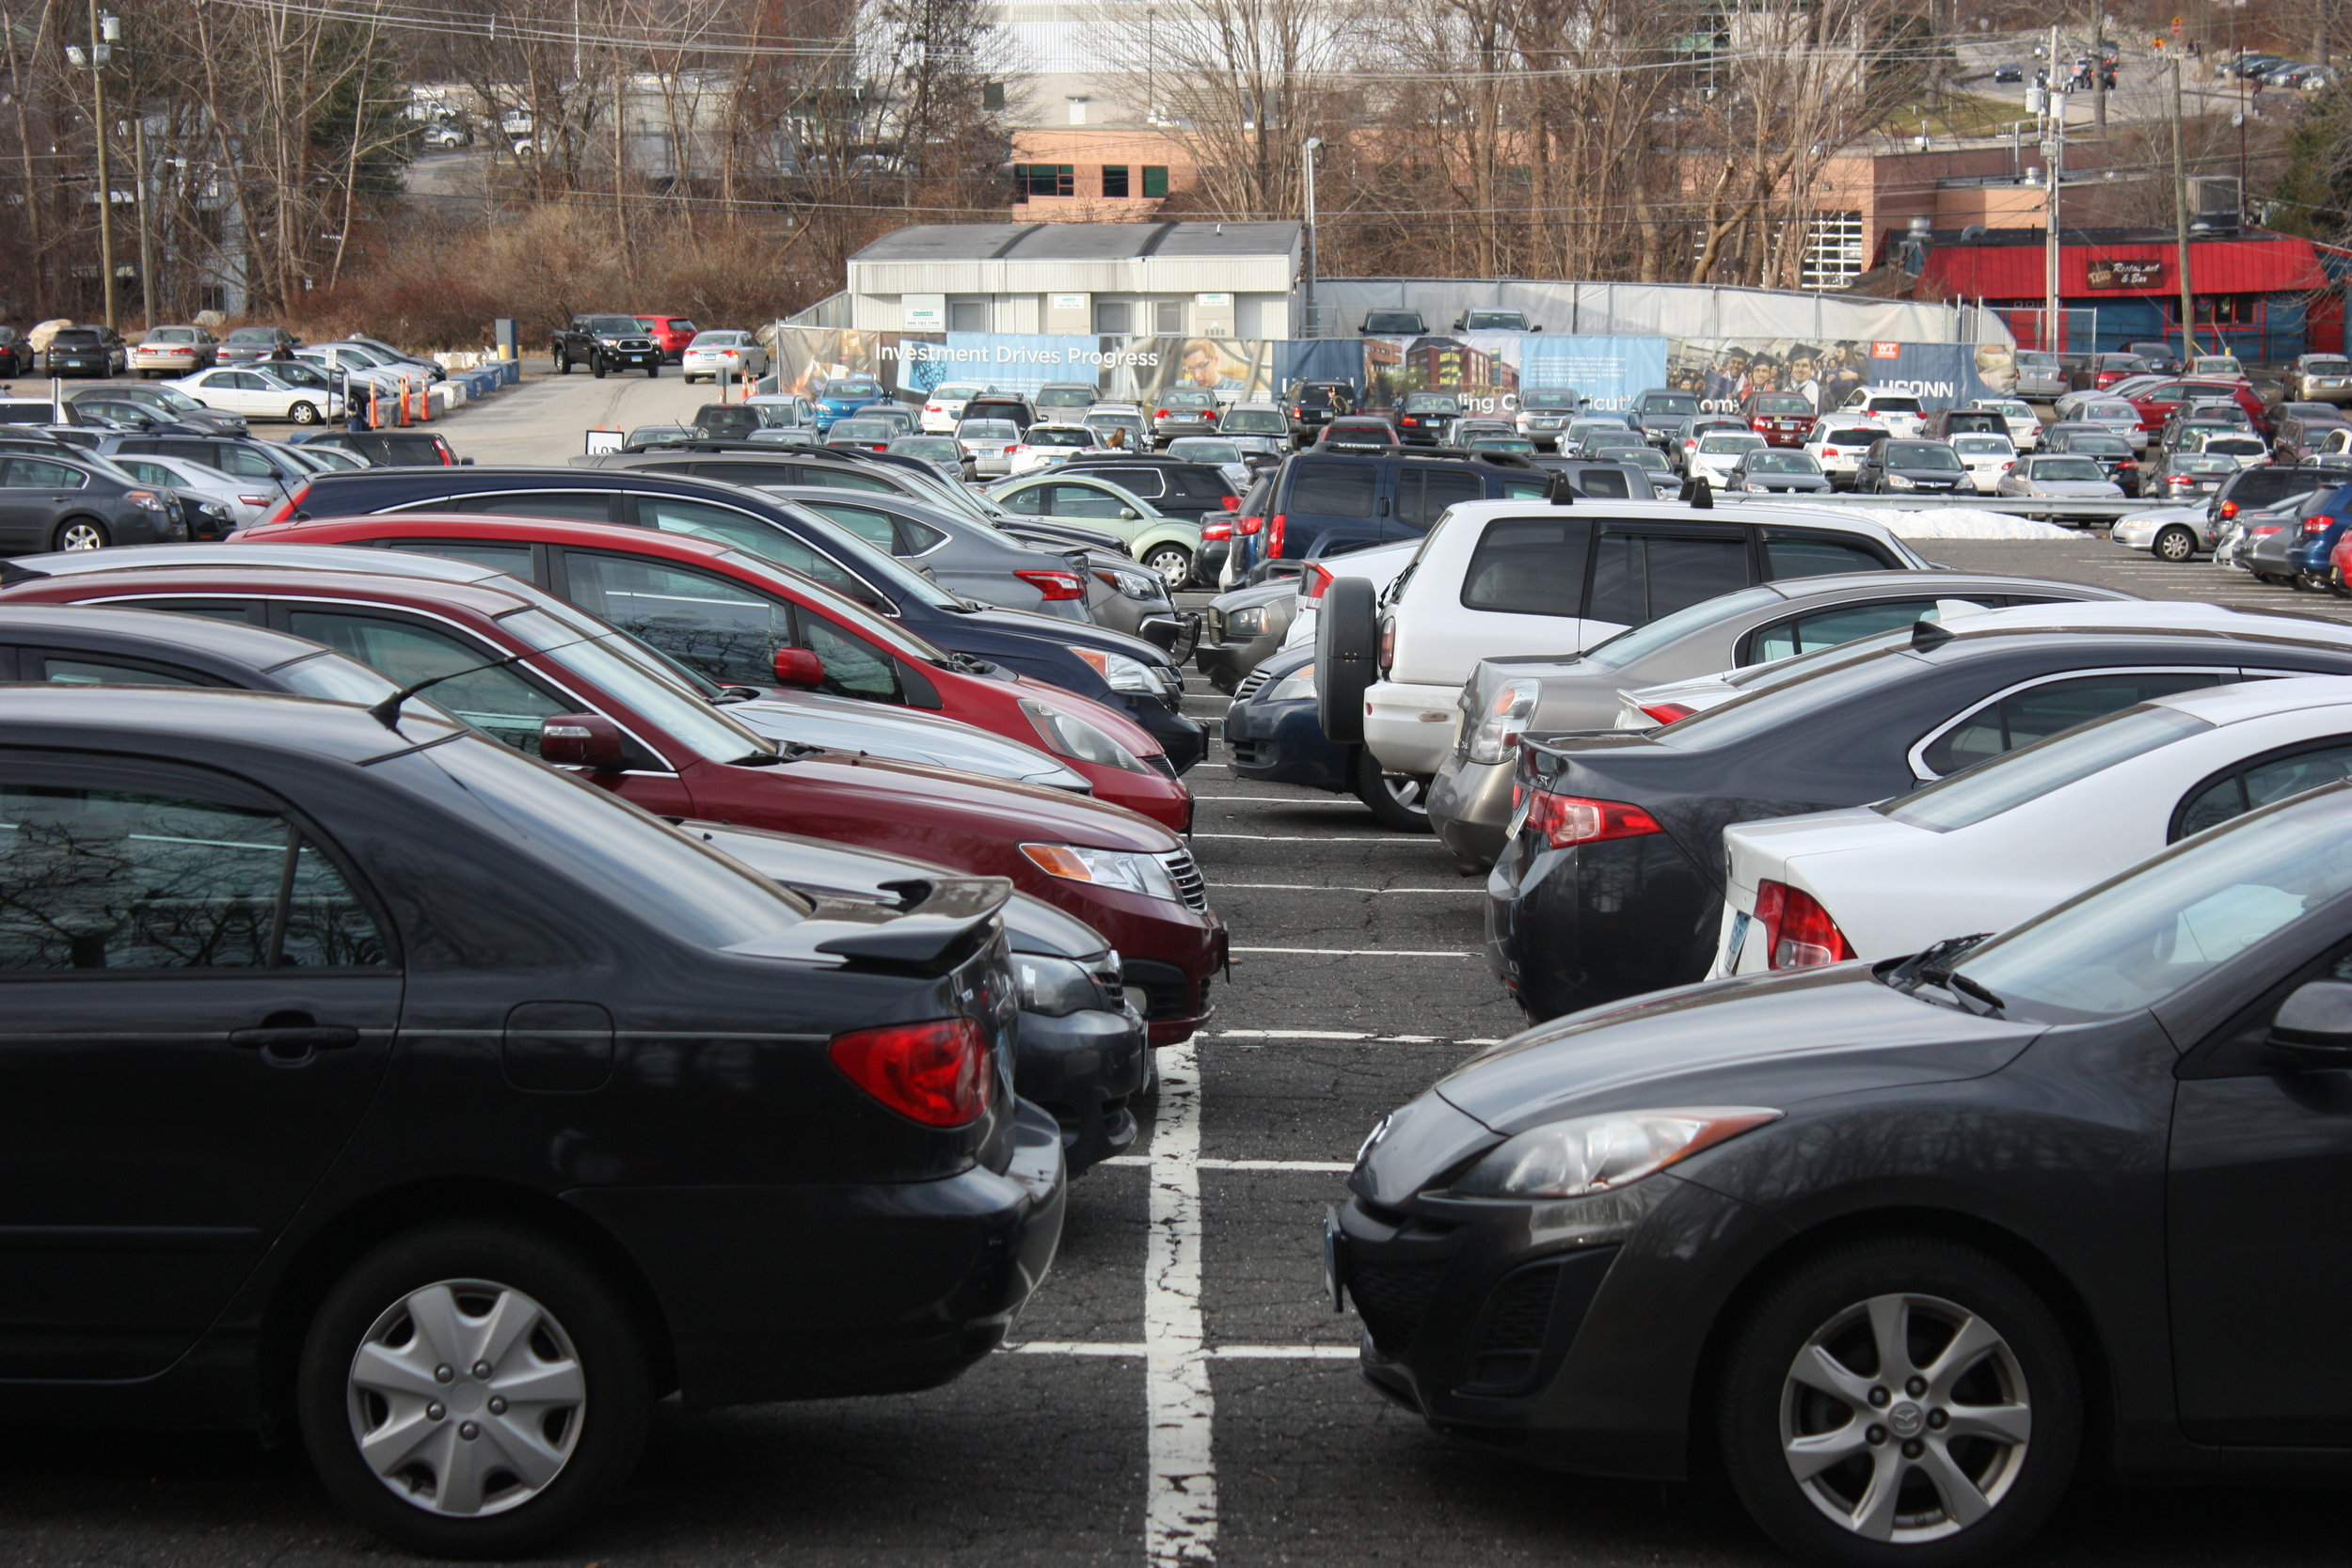 A full lot of cars in the X parking lot on the North side of UConn's Storrs campus on December 5, 2018. Students are questioning the legality of advertisements being placed on cars in UConn parking lots. (Judah Shingleton/The Daily Campus)